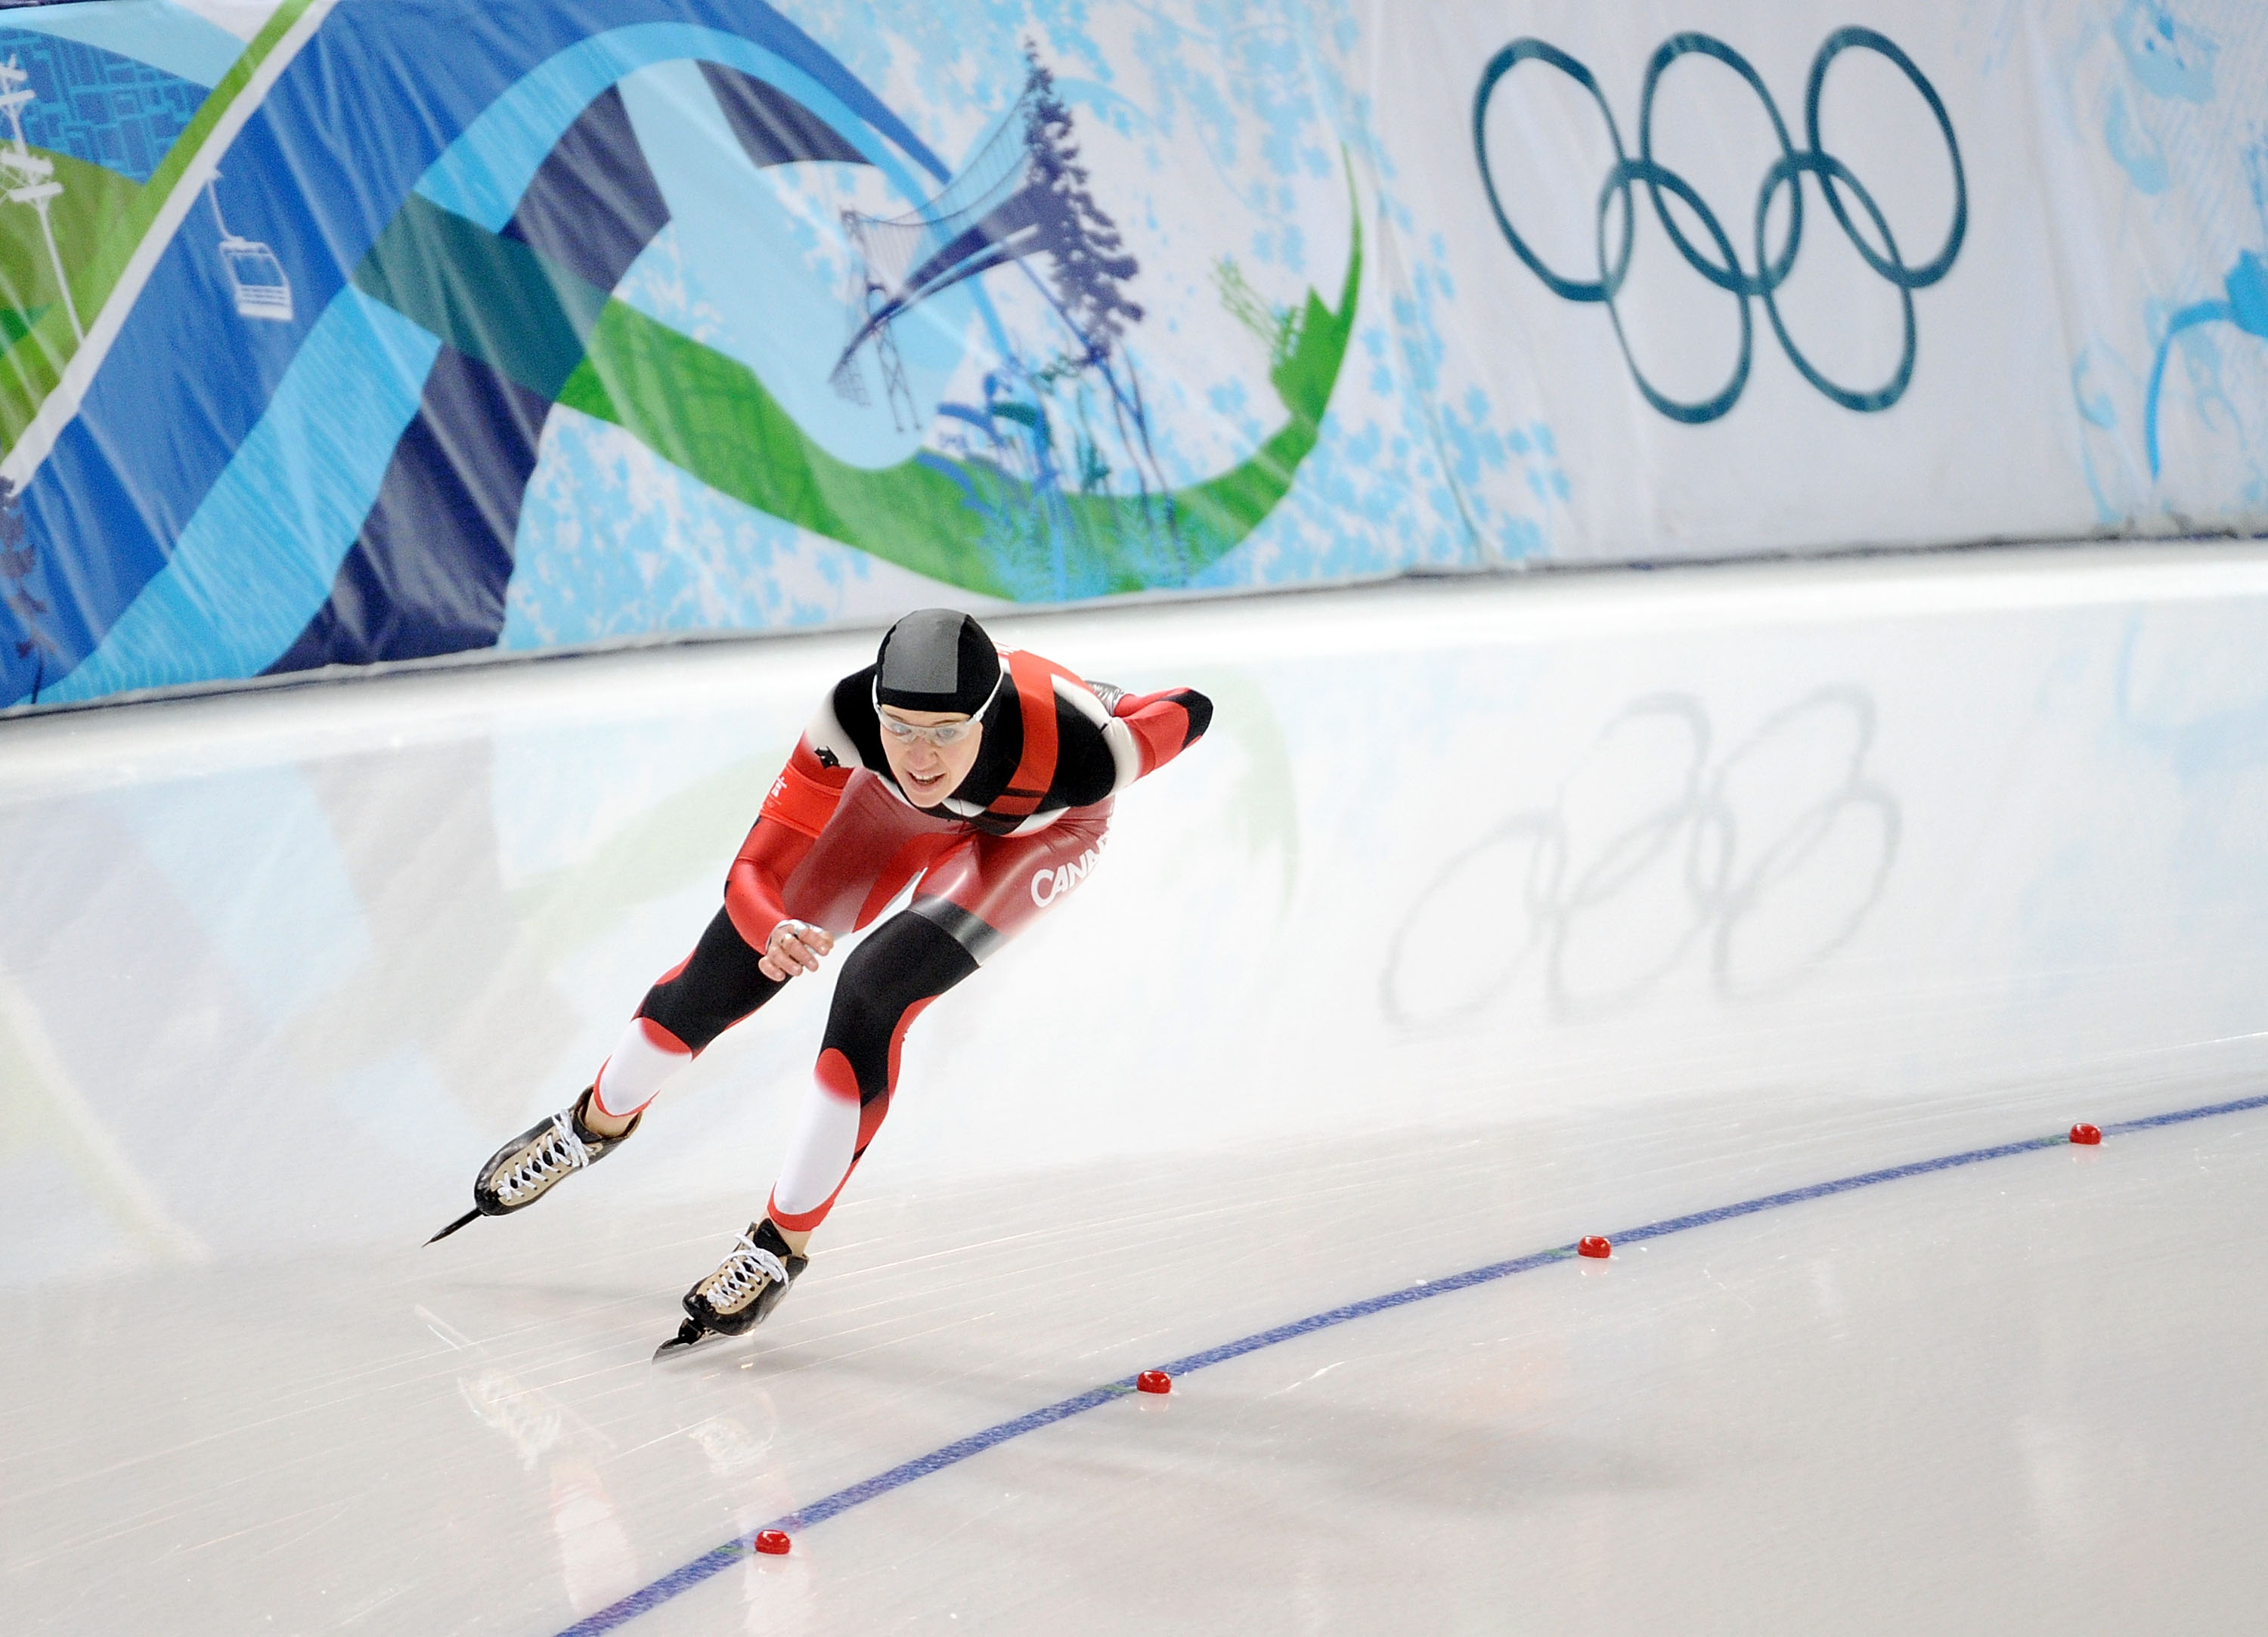 Clara Hughes of Canada on the ice during the Ladies' 5000m Speed Skating finals during the 2010 Vancouver Winter Olympics in Canada. Harry How—Getty Images